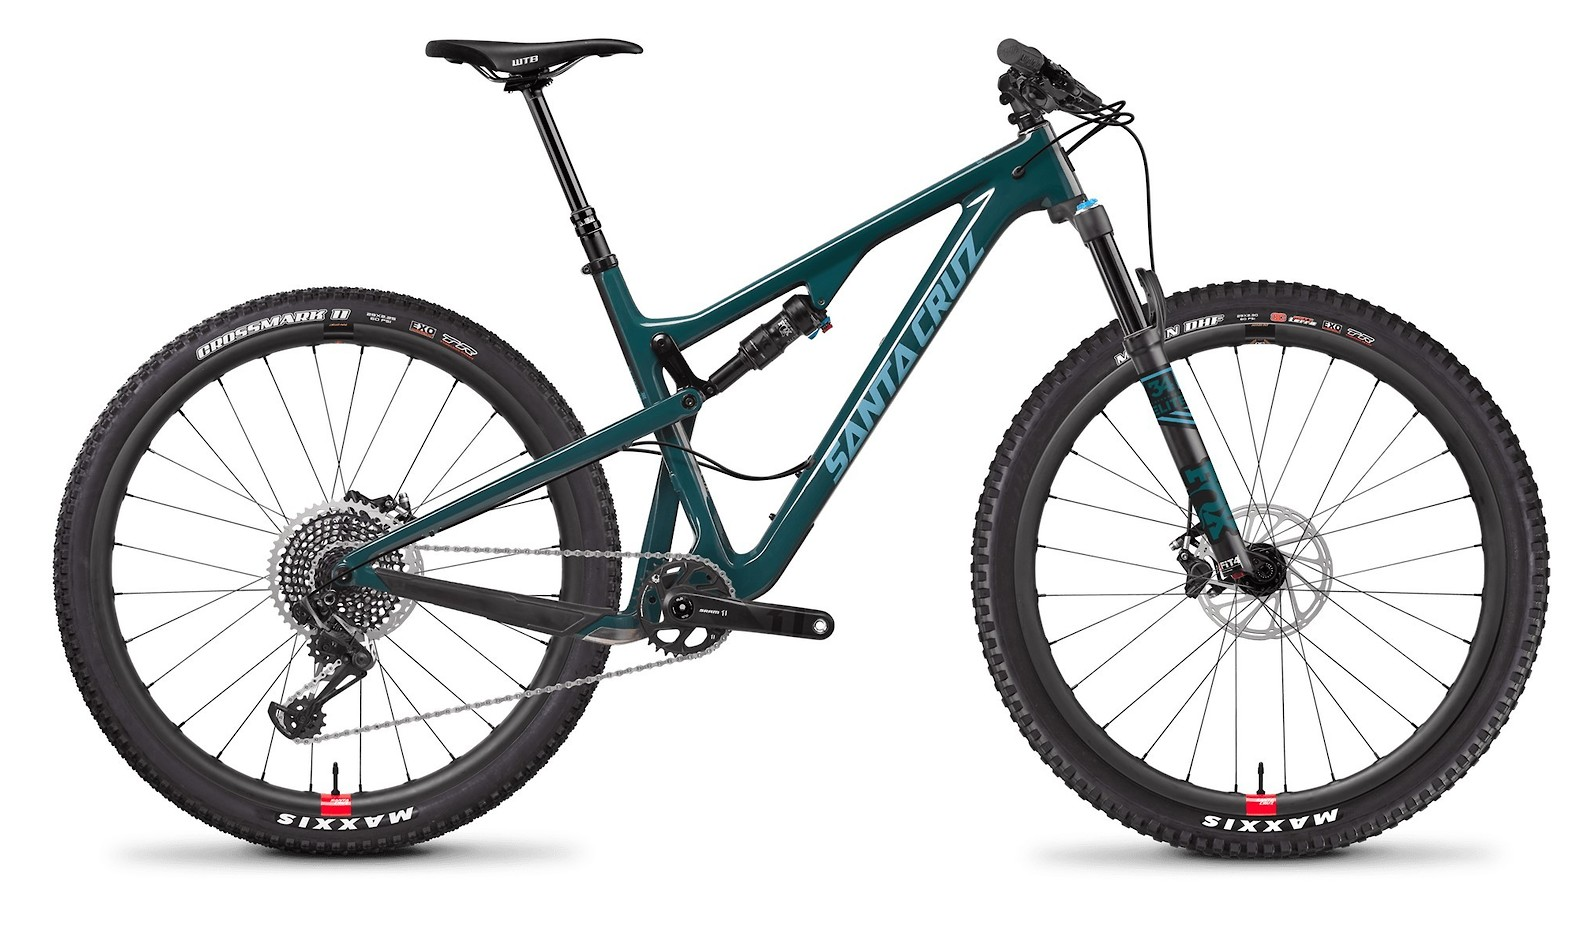 Tallboy Carbon CC Forest Green and Baby Blue with Reserve Wheels